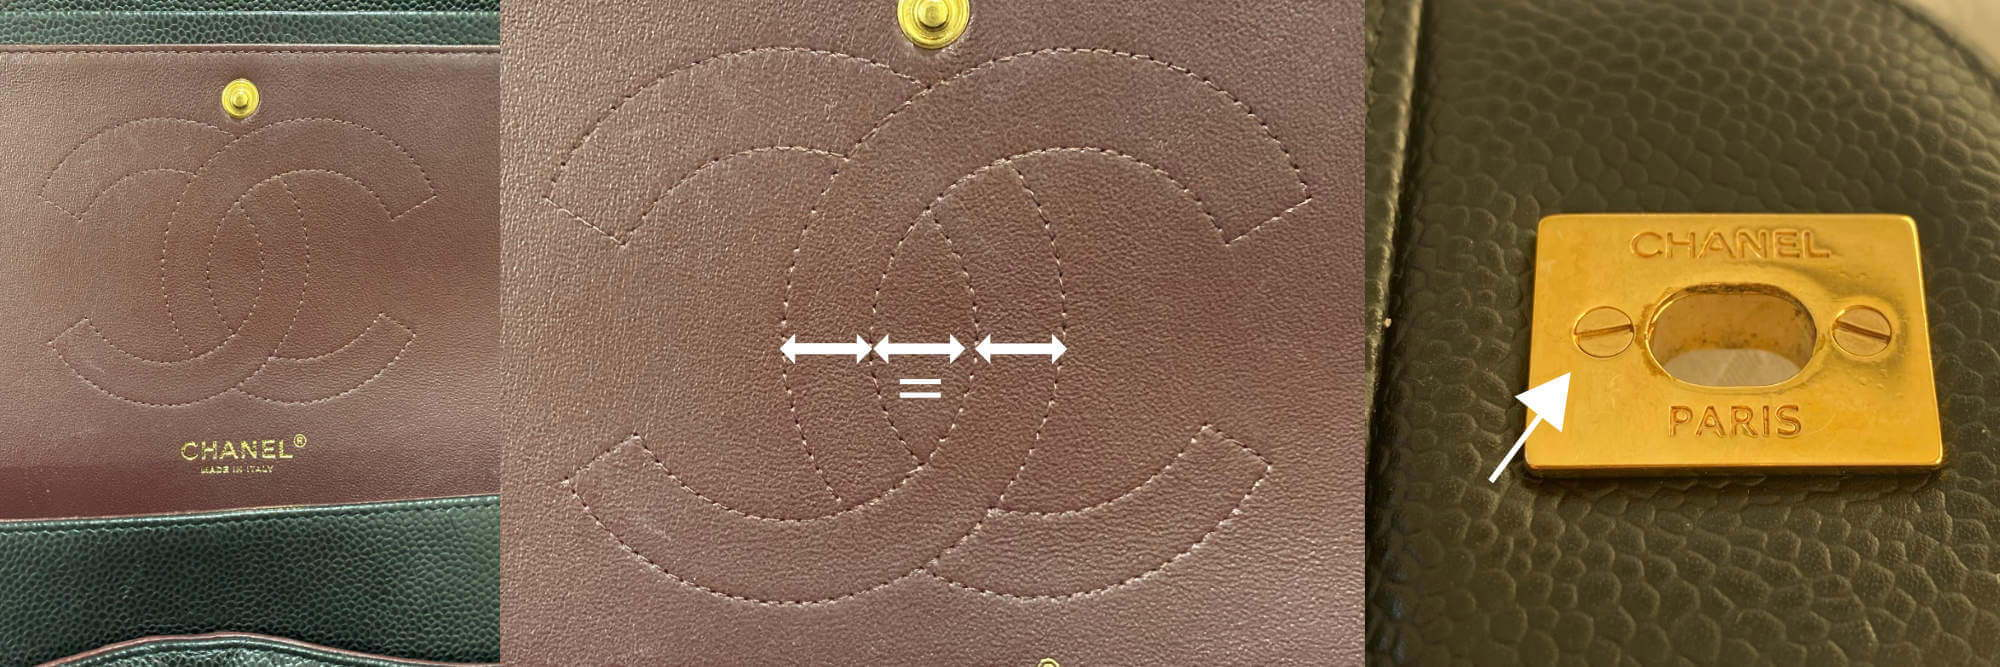 Authentic Chanel logo stitching and lock plate